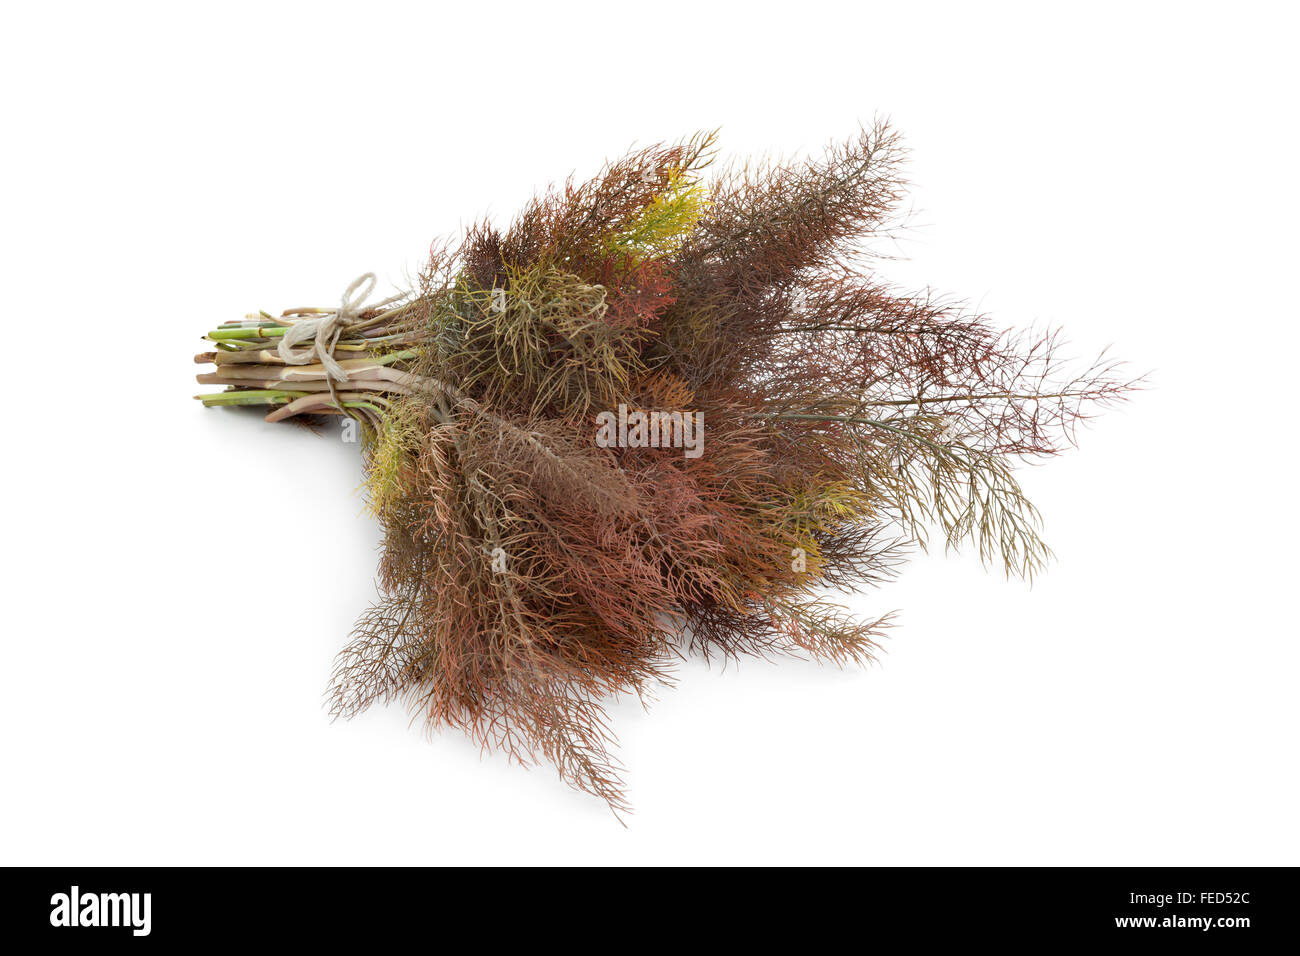 Bunch of fresh bronze fennel on white background - Stock Image